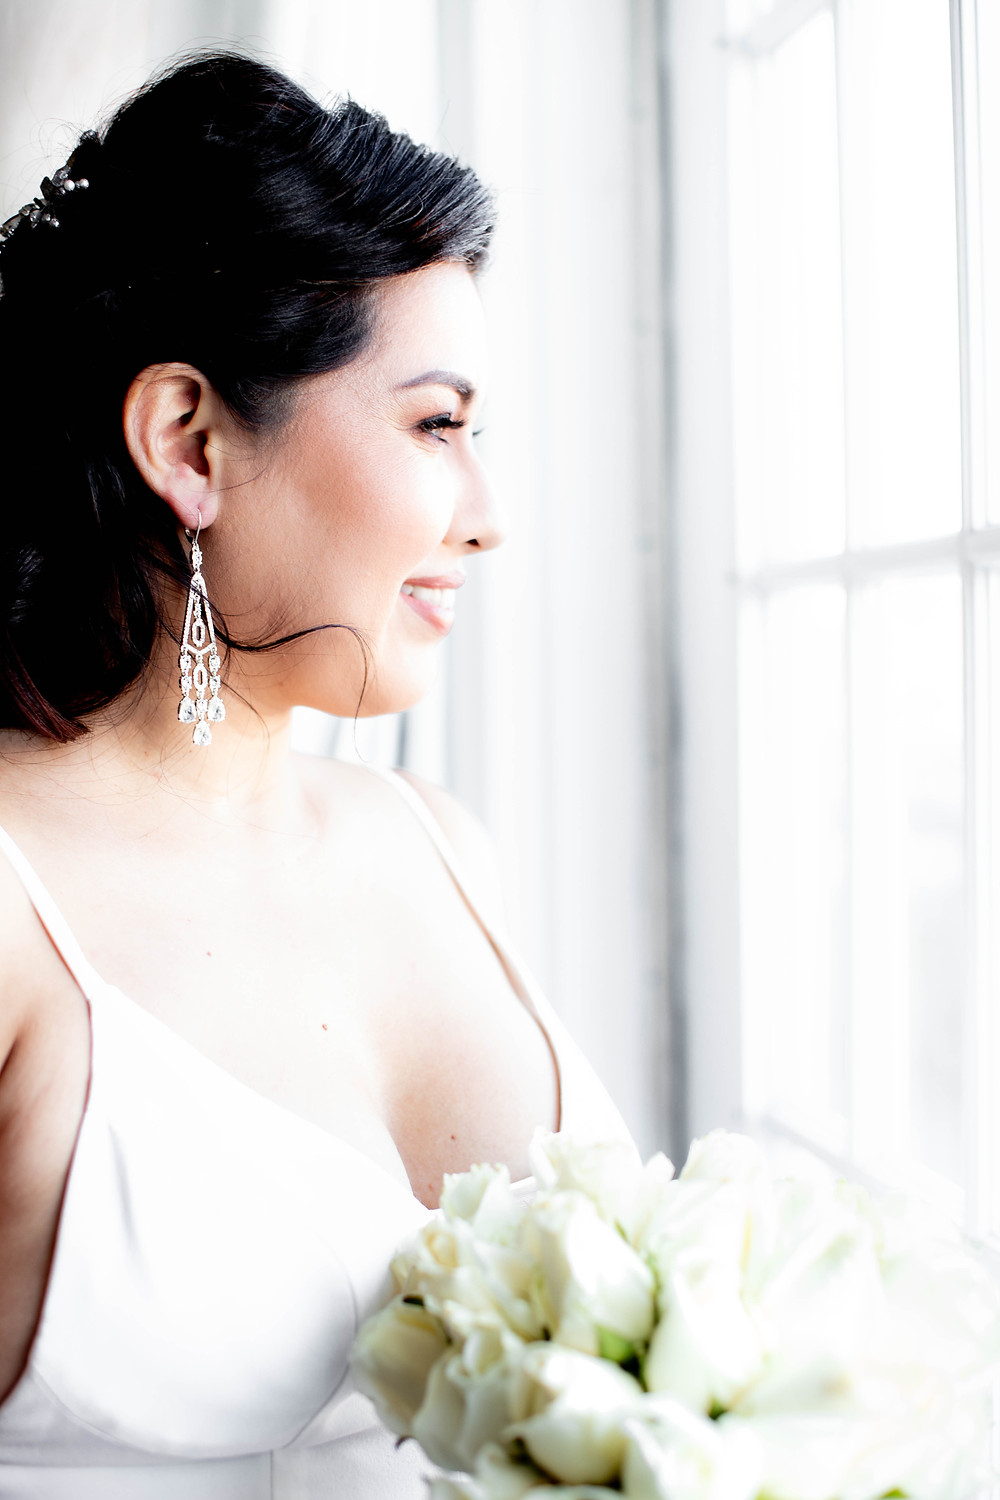 Beautiful bride wedding photography at the Hotel Lorien and Spa in Old Town, Alexandria in Virginia.